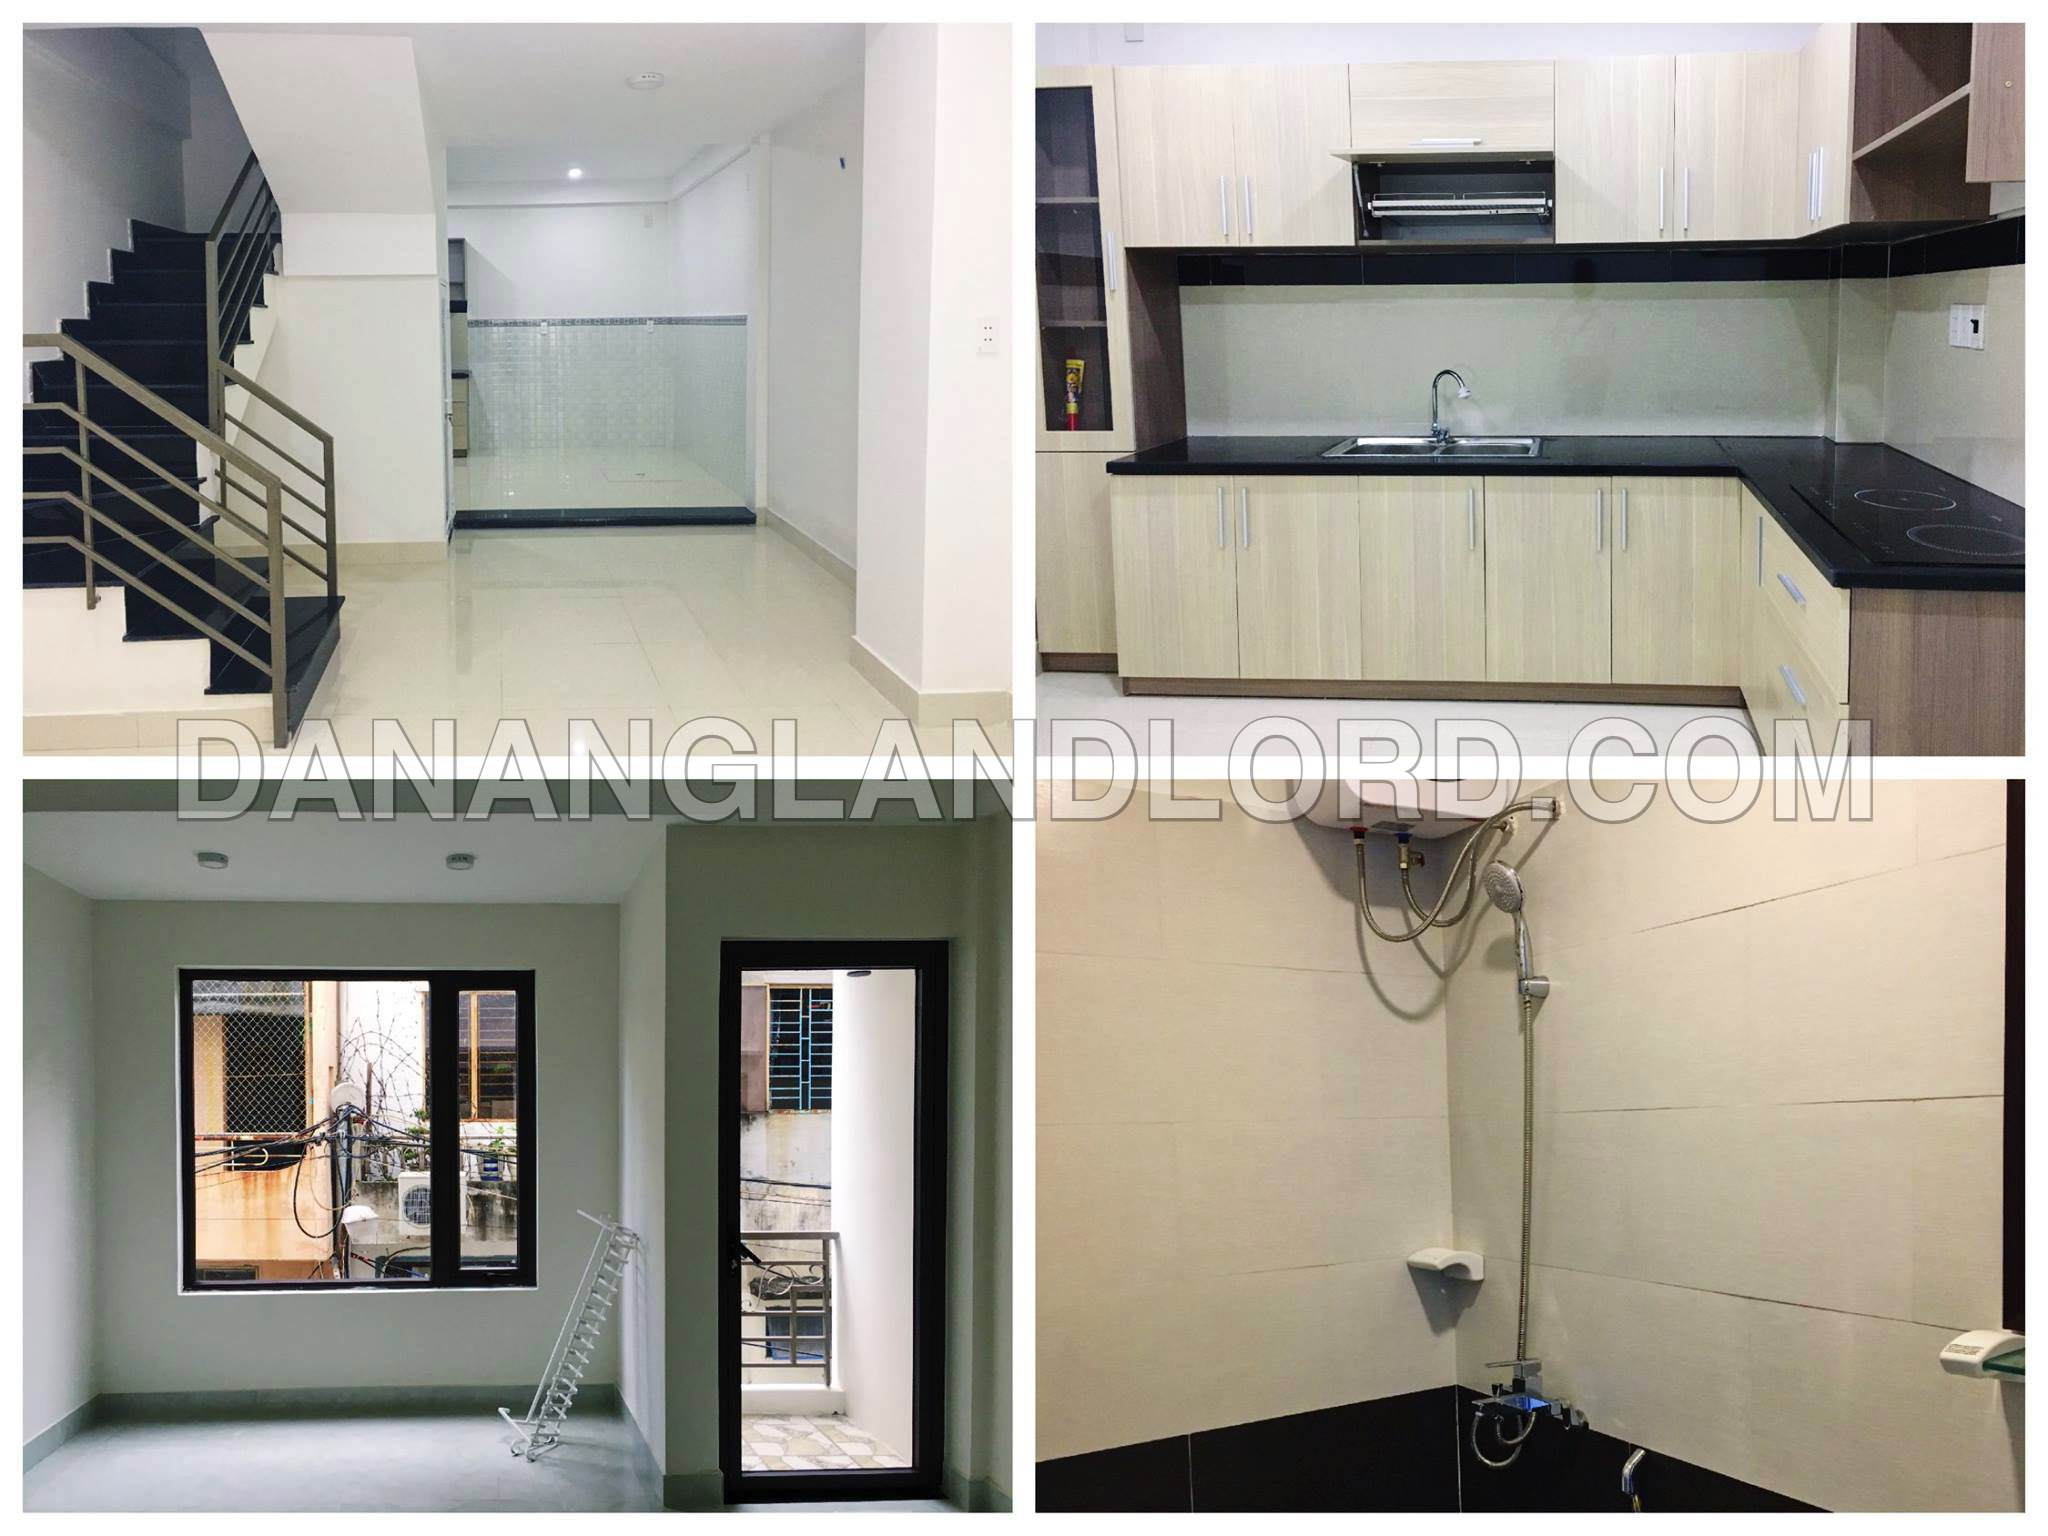 The new house with 4 bedrooms on Le Dinh Ly alley